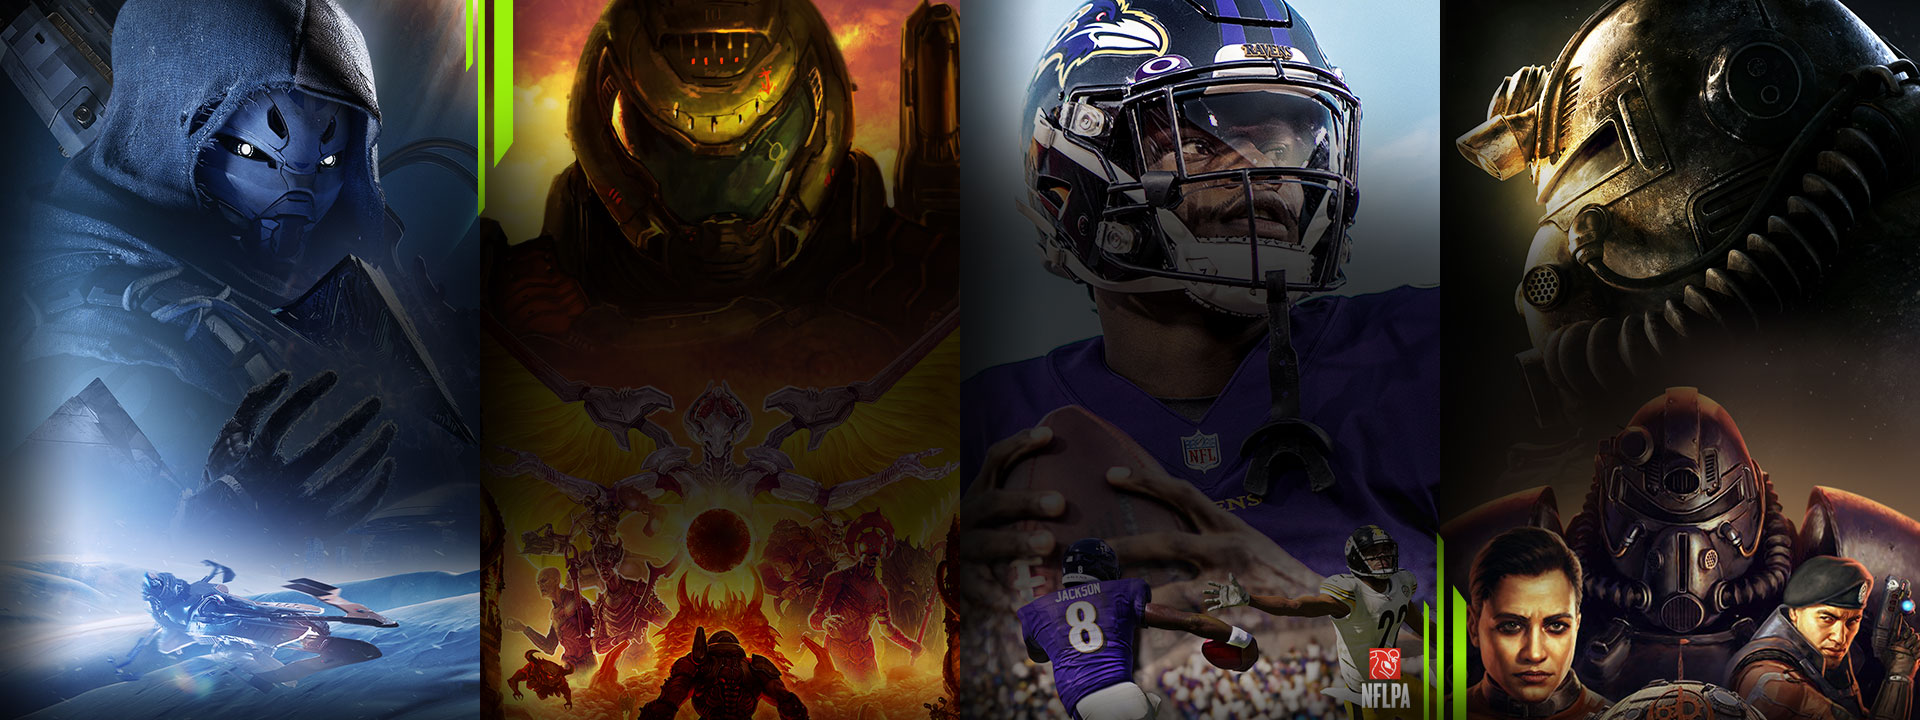 『Destiny 2』、『Doom Eternal』、『Madden NFL 21』、『Fallout 76』などのゲームが、Xbox Game Pass でプレイできます。